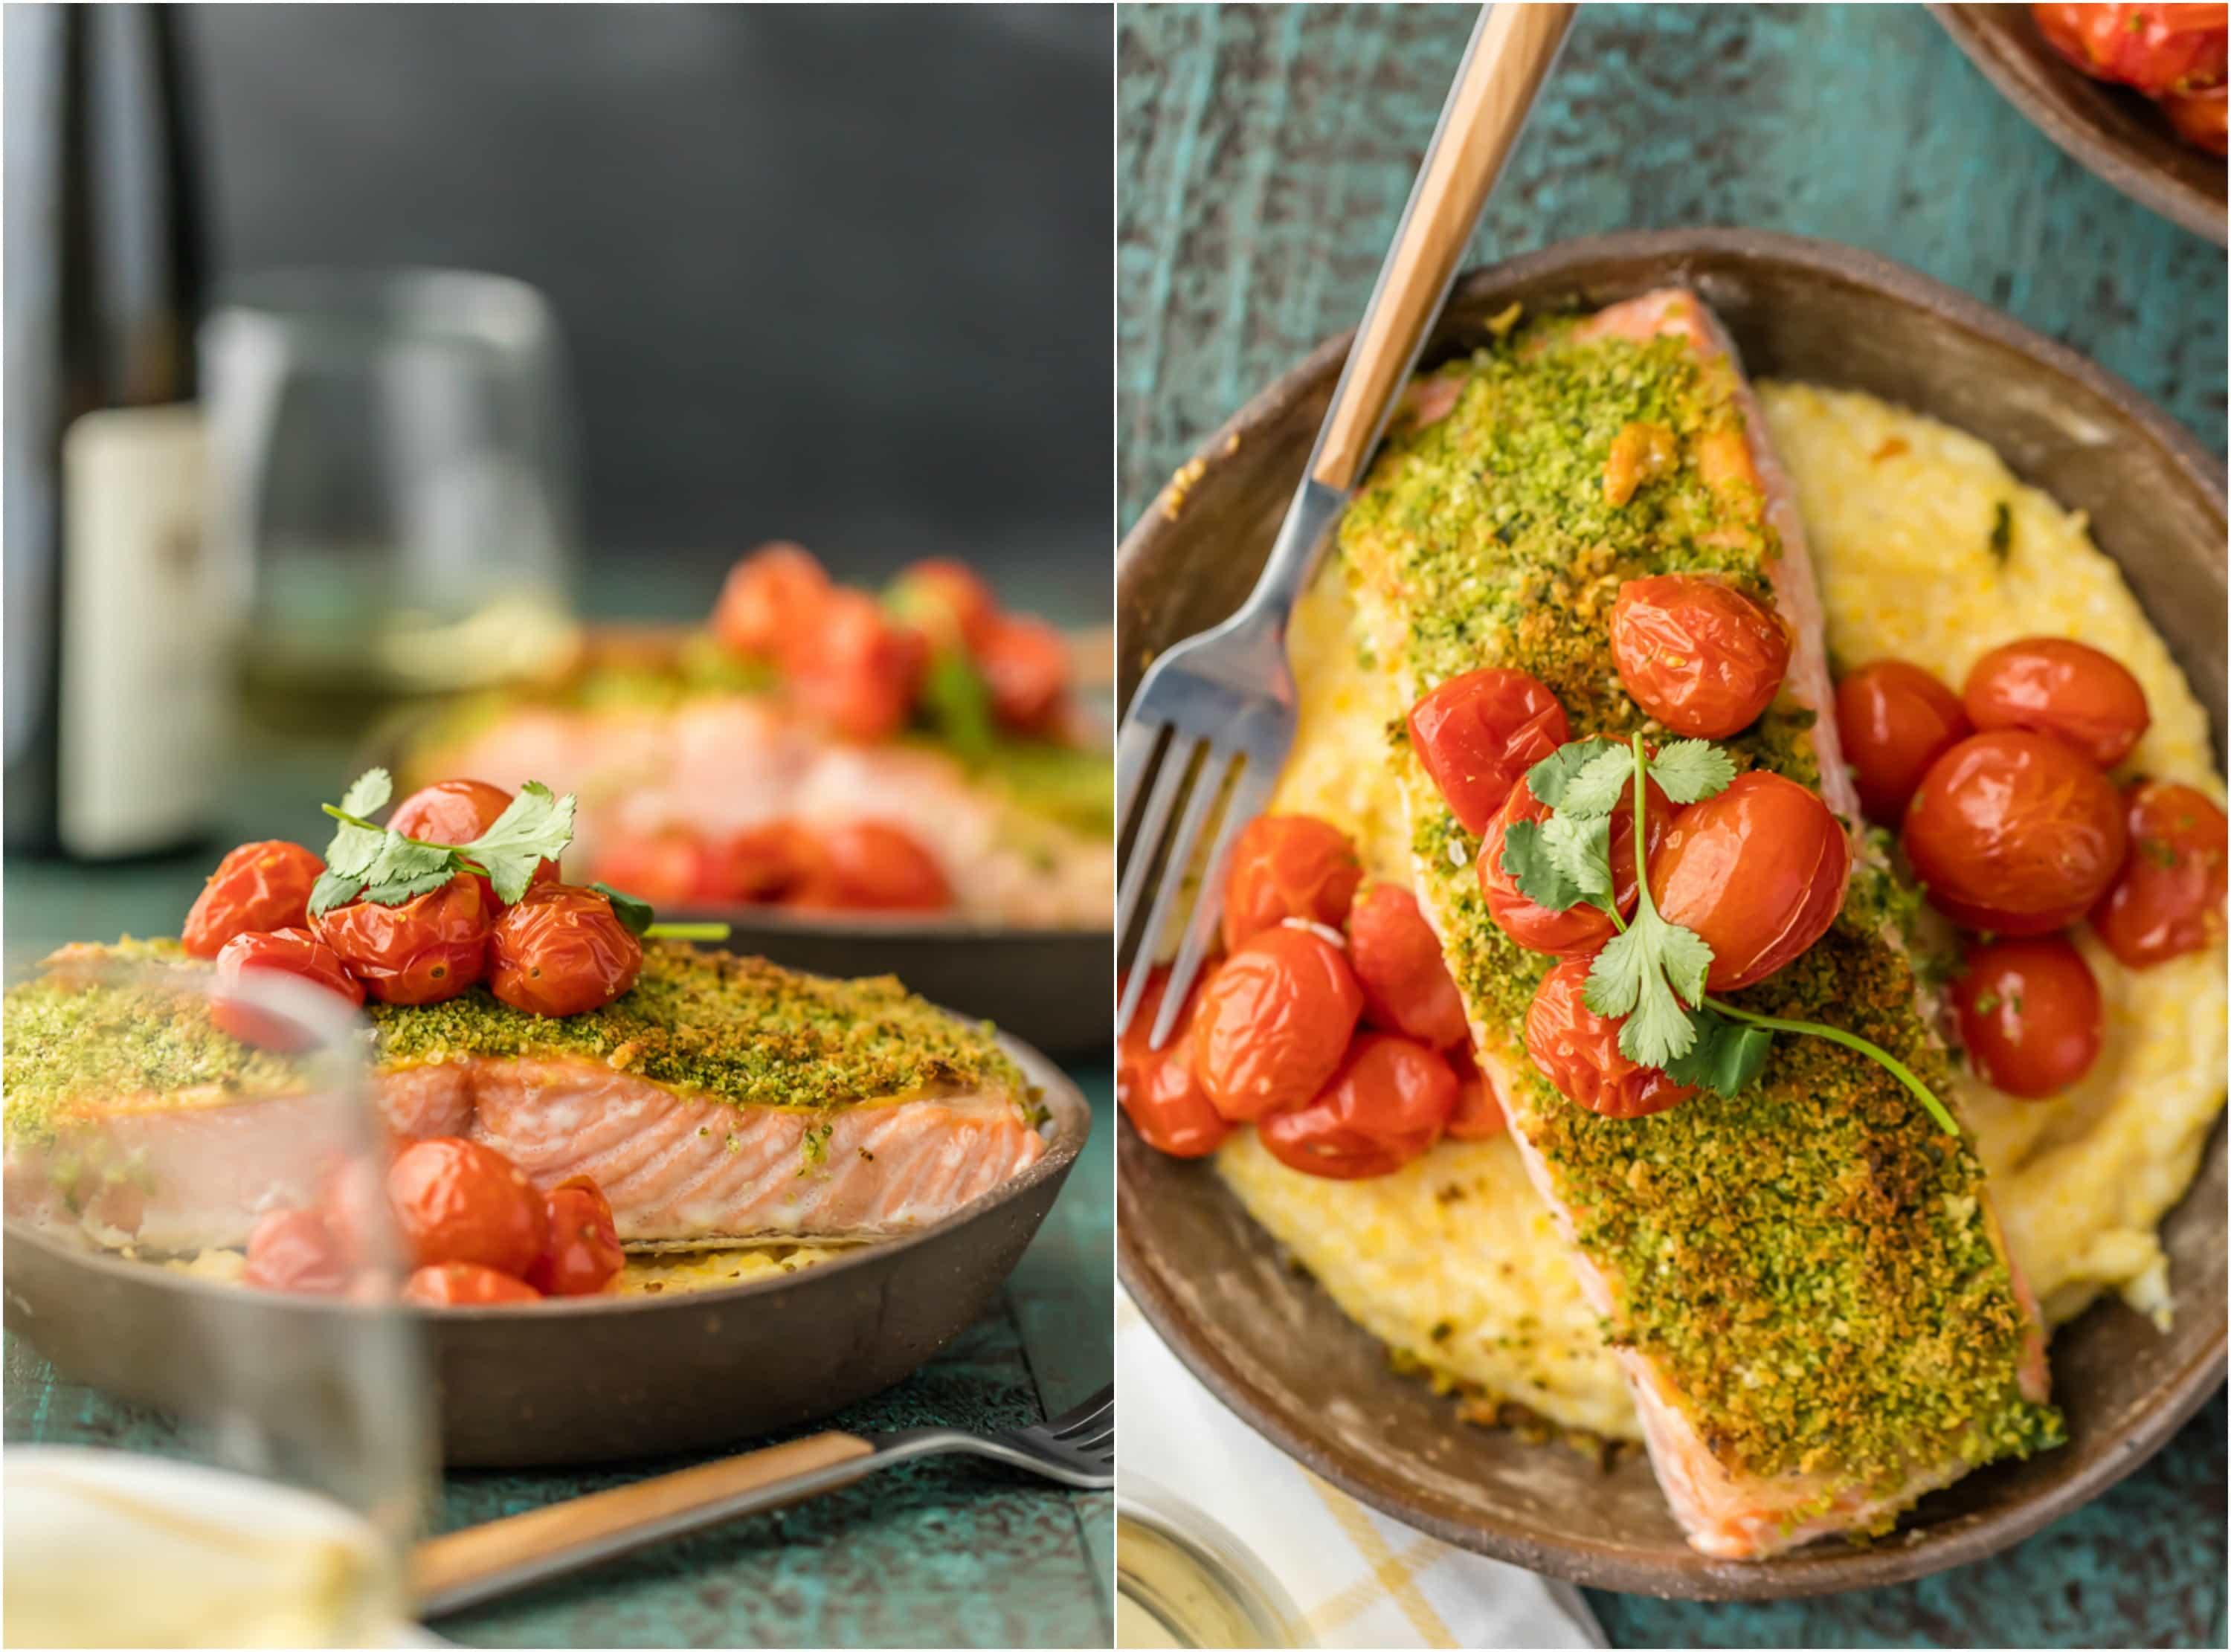 herb crusted salmon and polenta, topped with roasted tomatoes